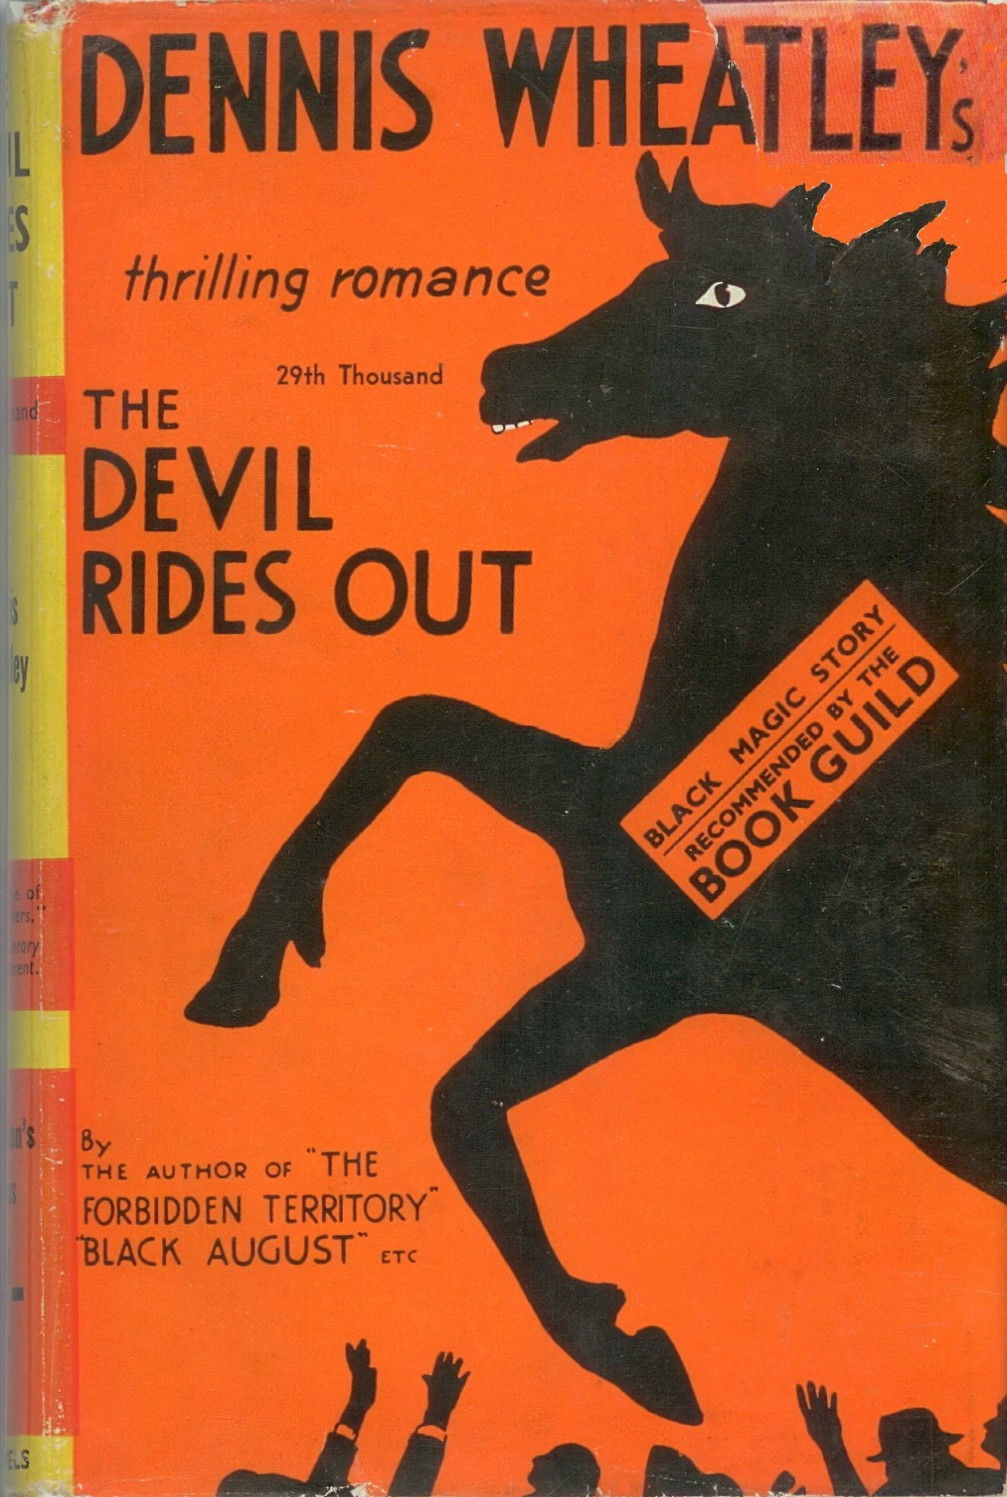 (The Devil Rides Out)